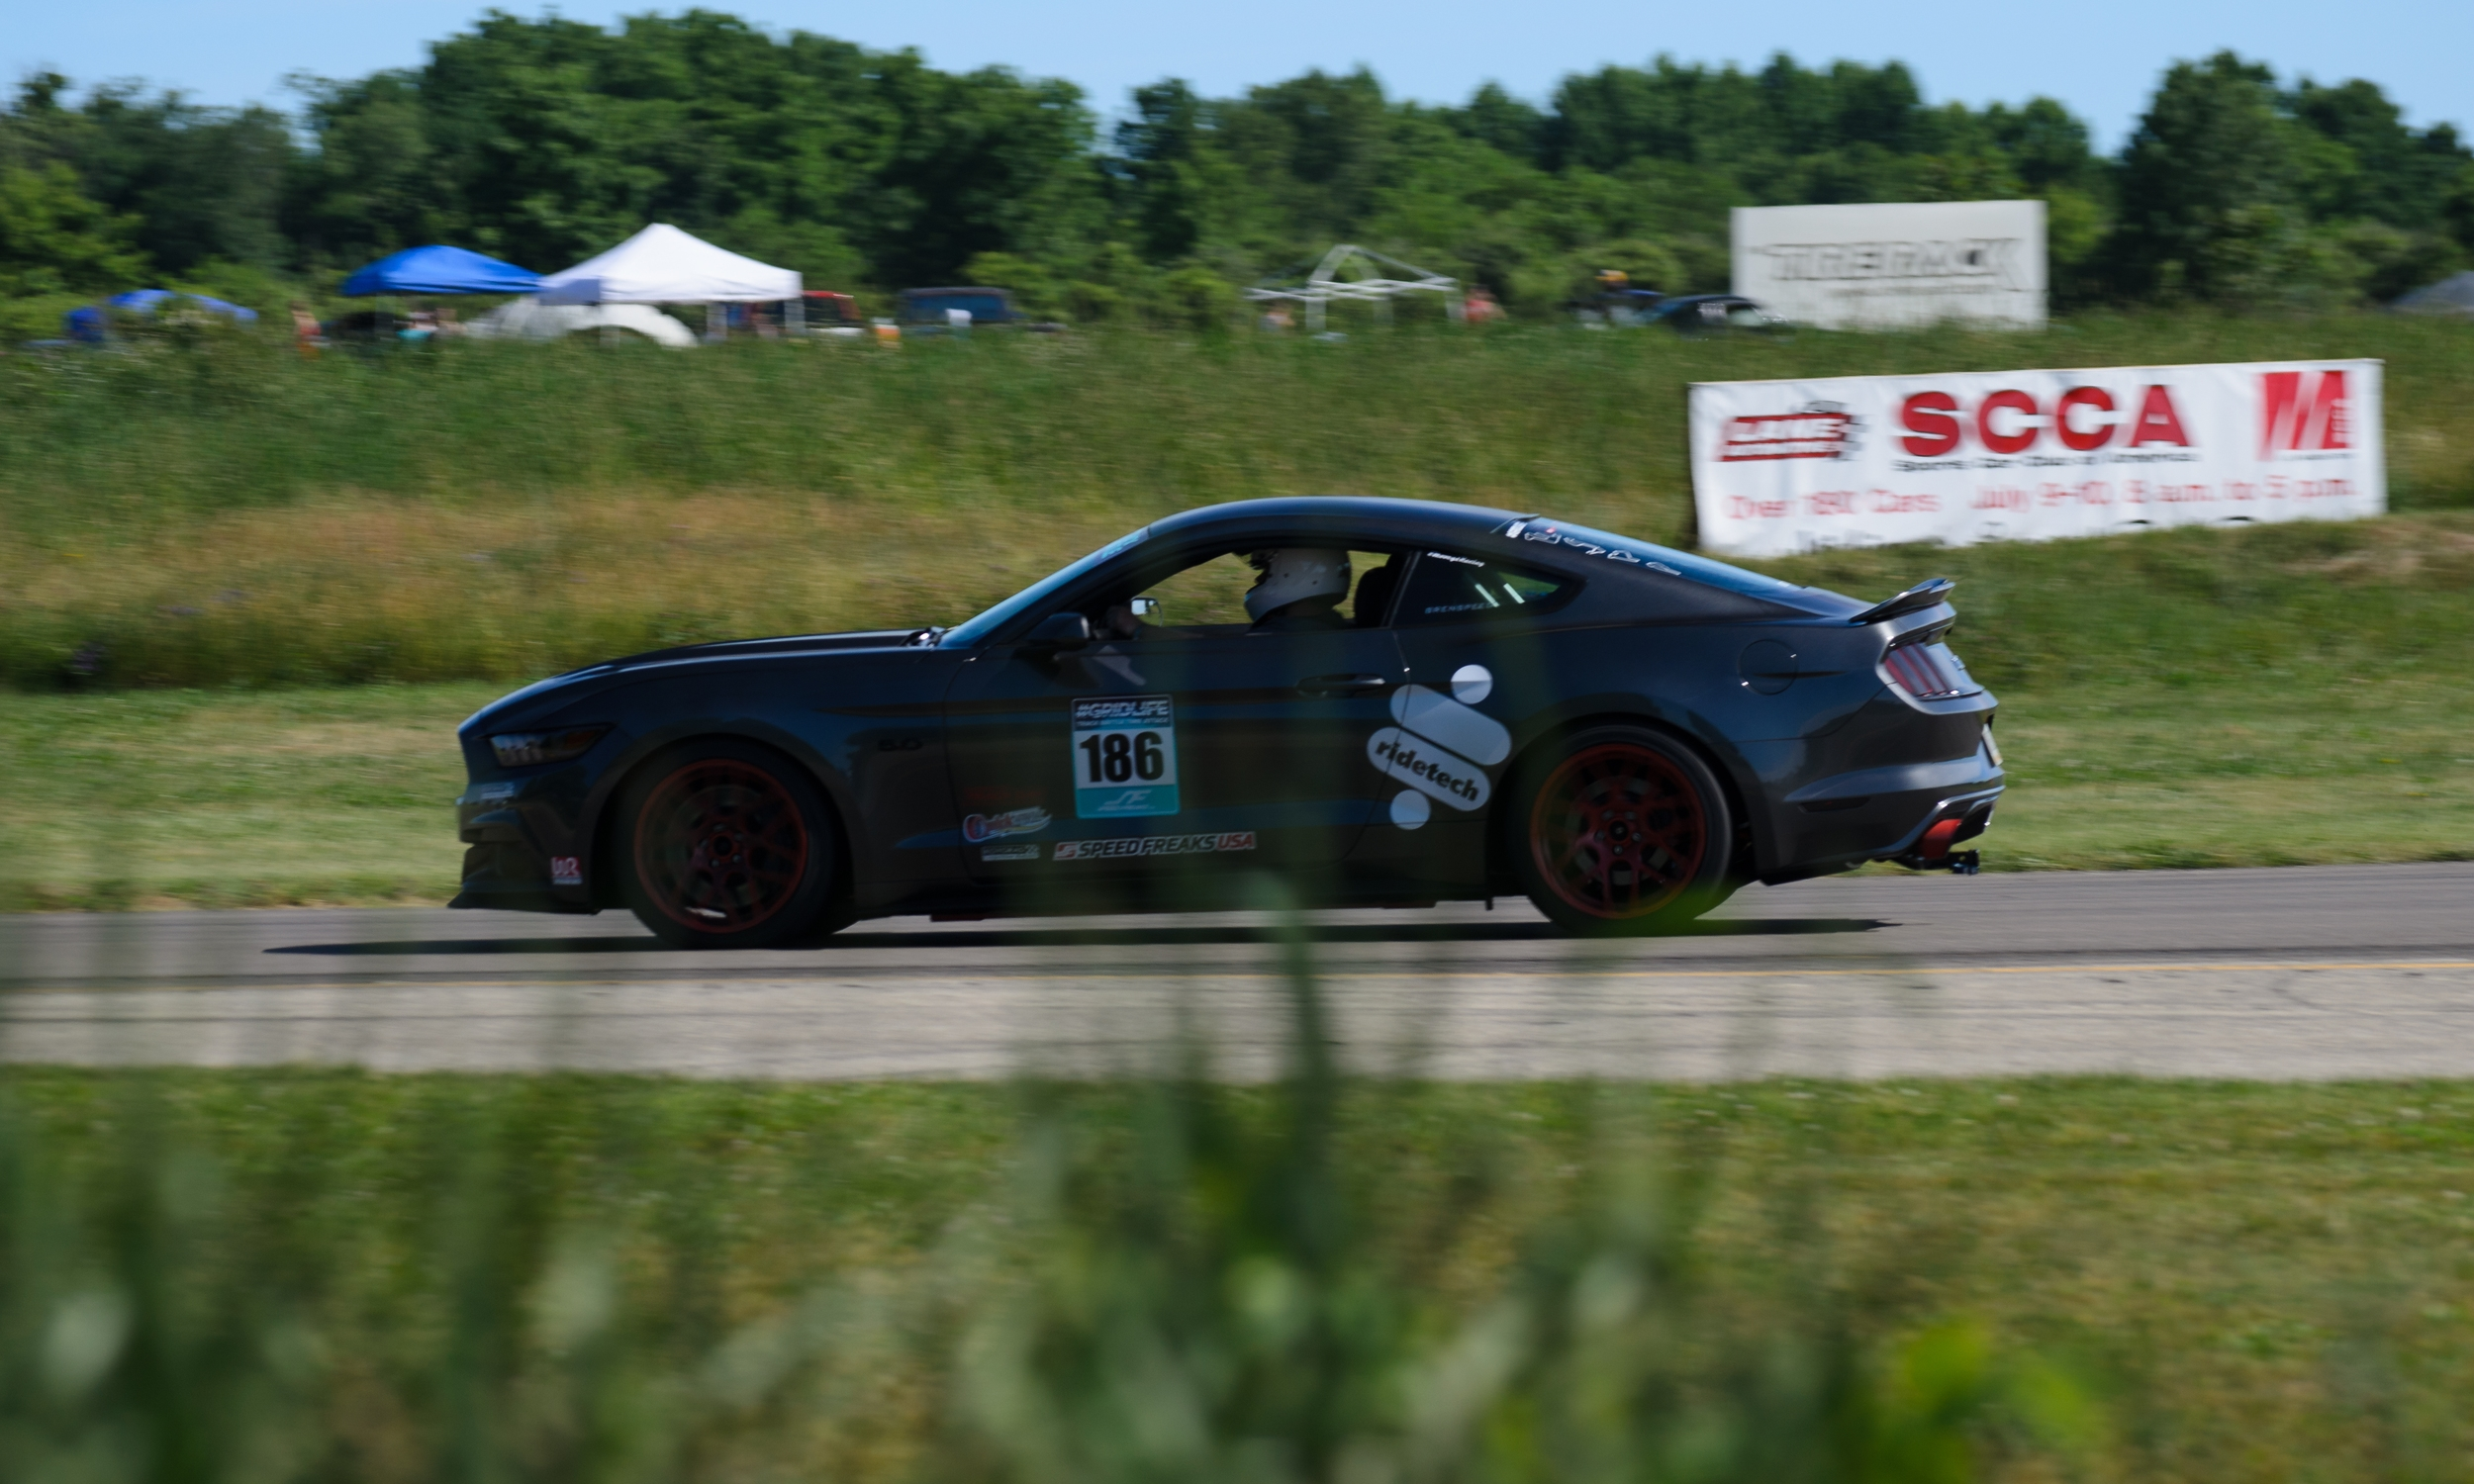 Eric Dominated the field by almost a full second in his prepped Mustang. It was great to see all those eagles fly during Timeattack. Official Time: 1:43.976